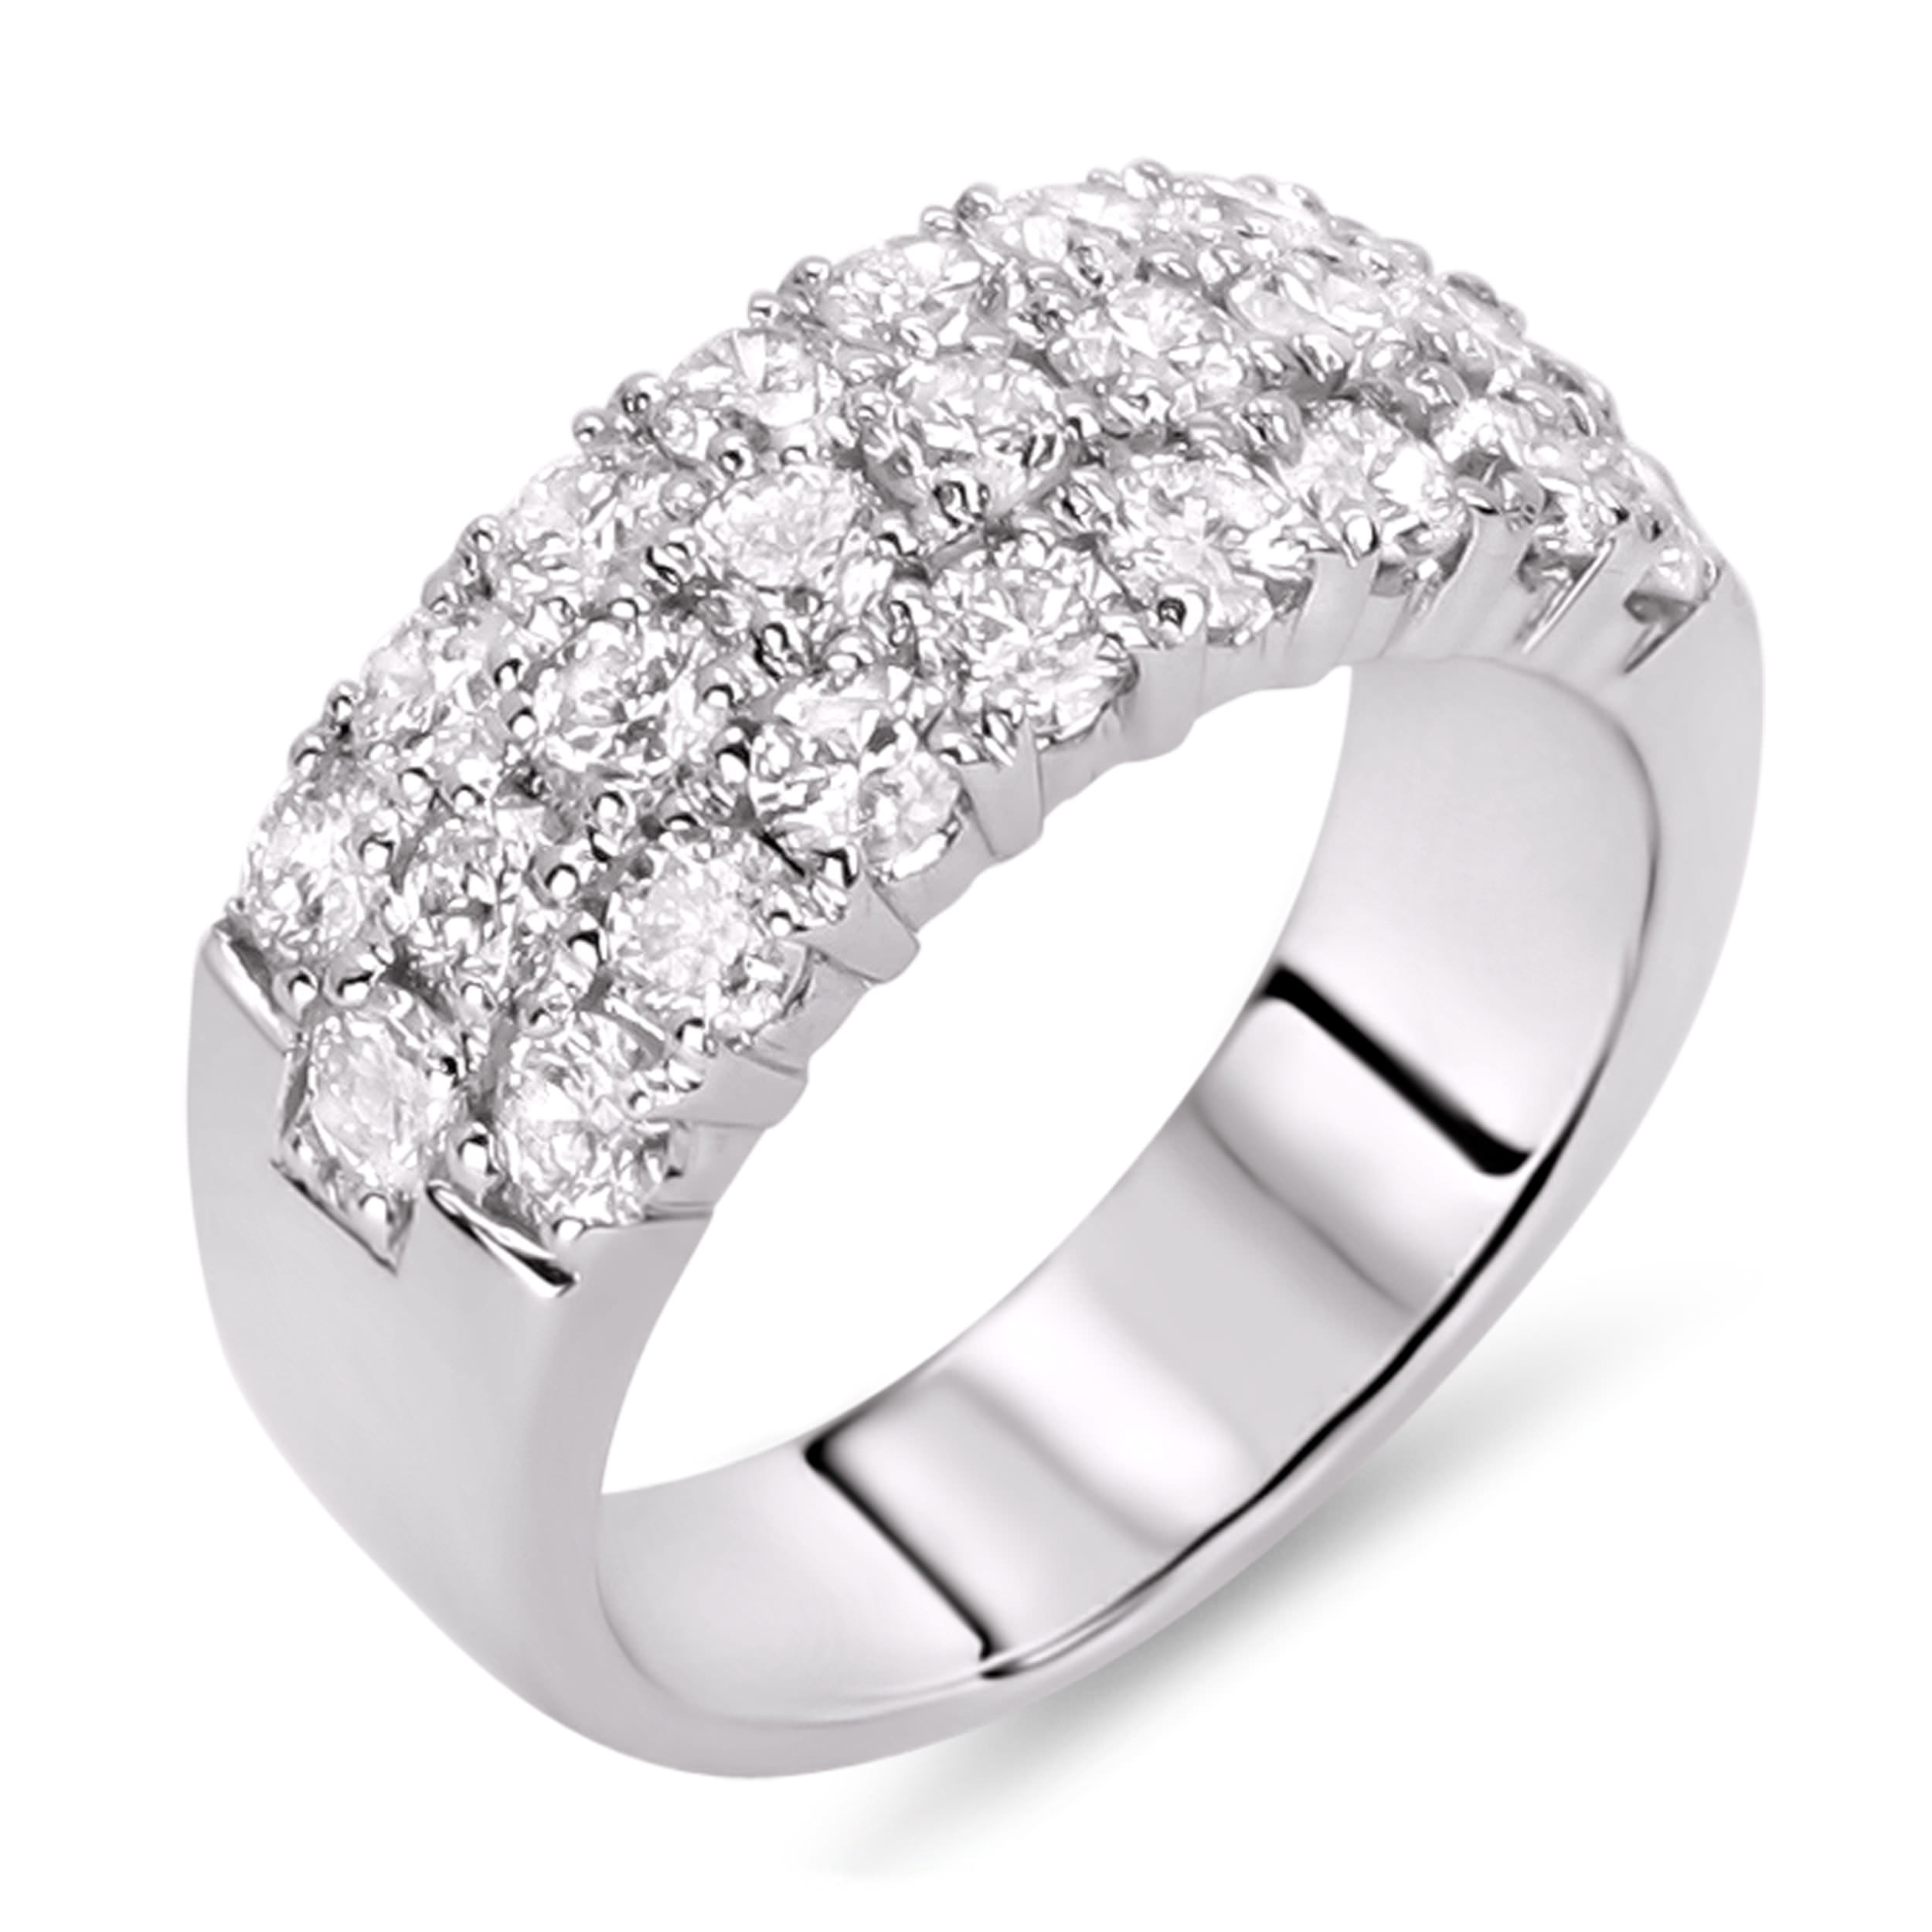 jeweler ring diamond aniversary rings ben crossover jewelry bridge